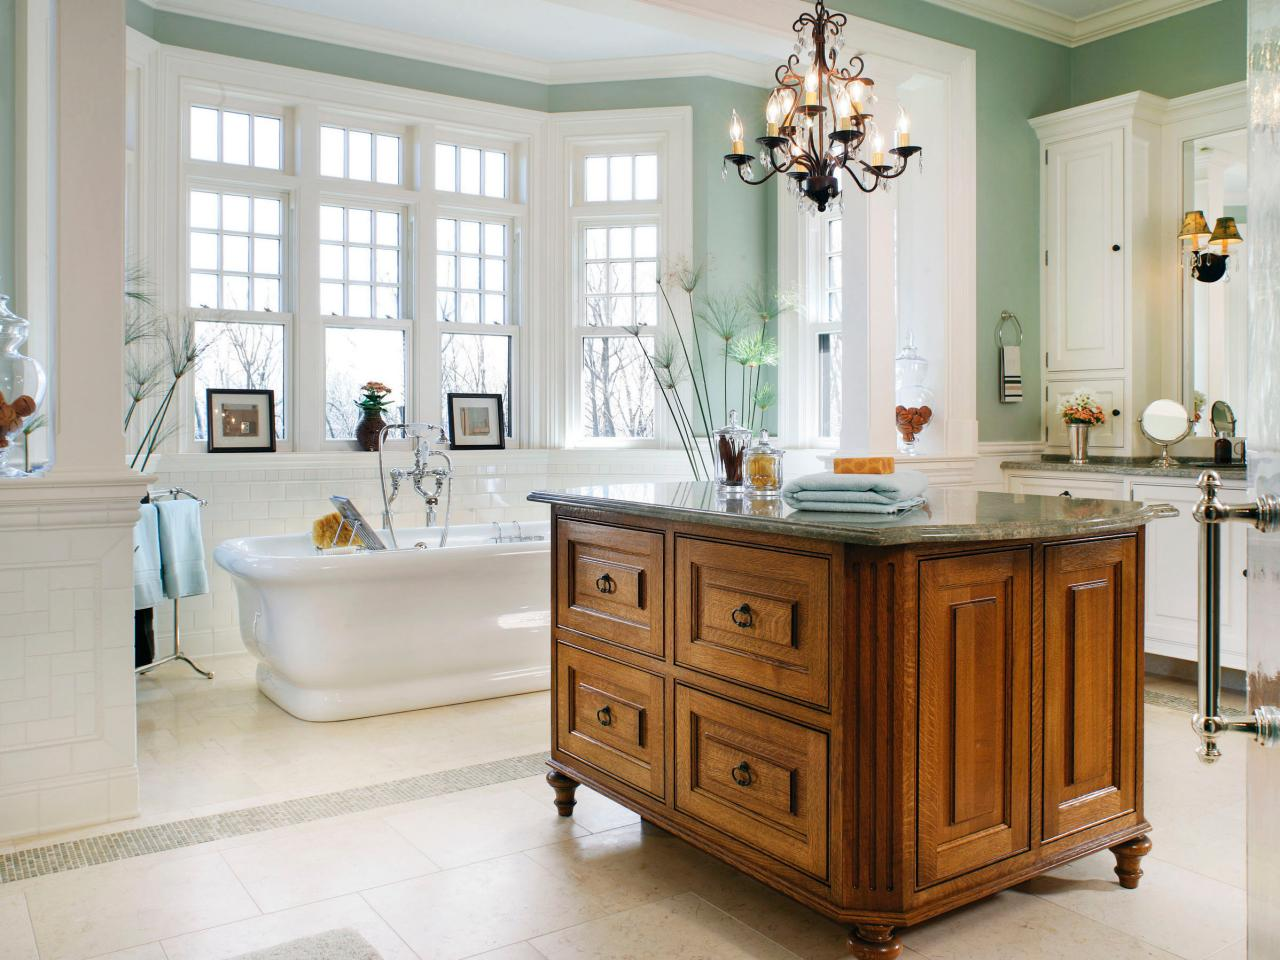 Freestanding Island Centered In Master Bathroom